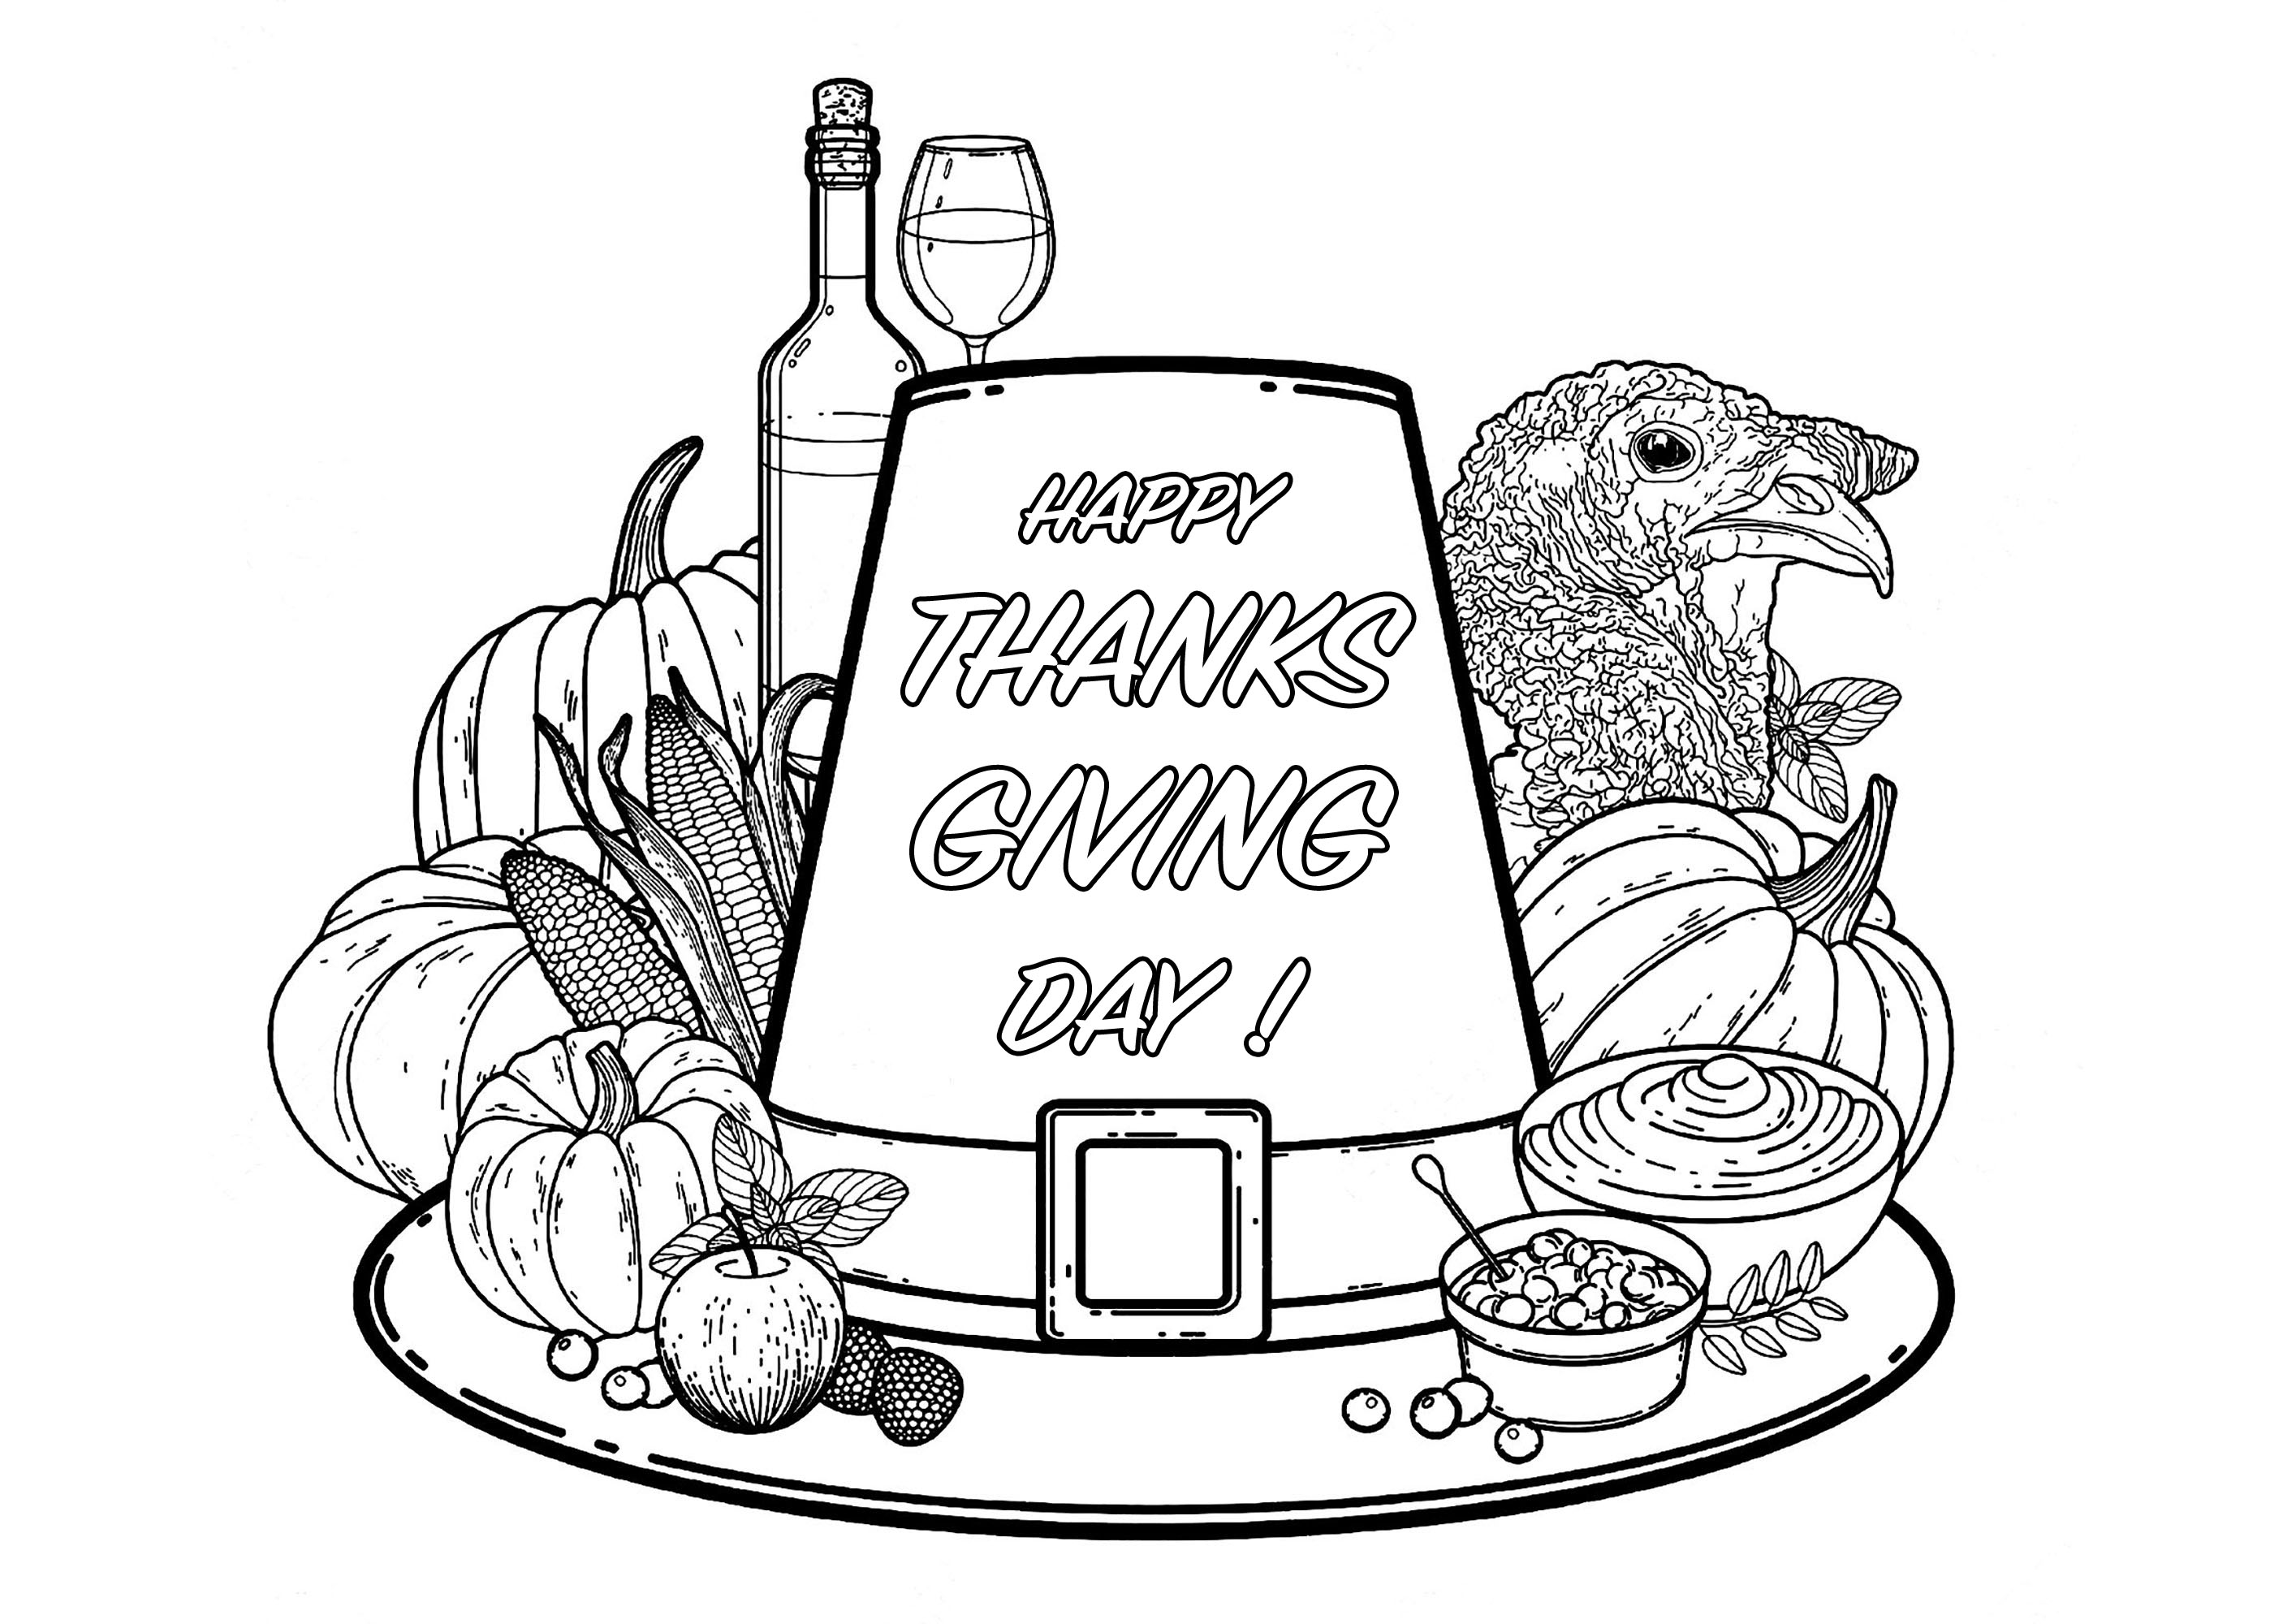 Happy Thanksgiving Day !